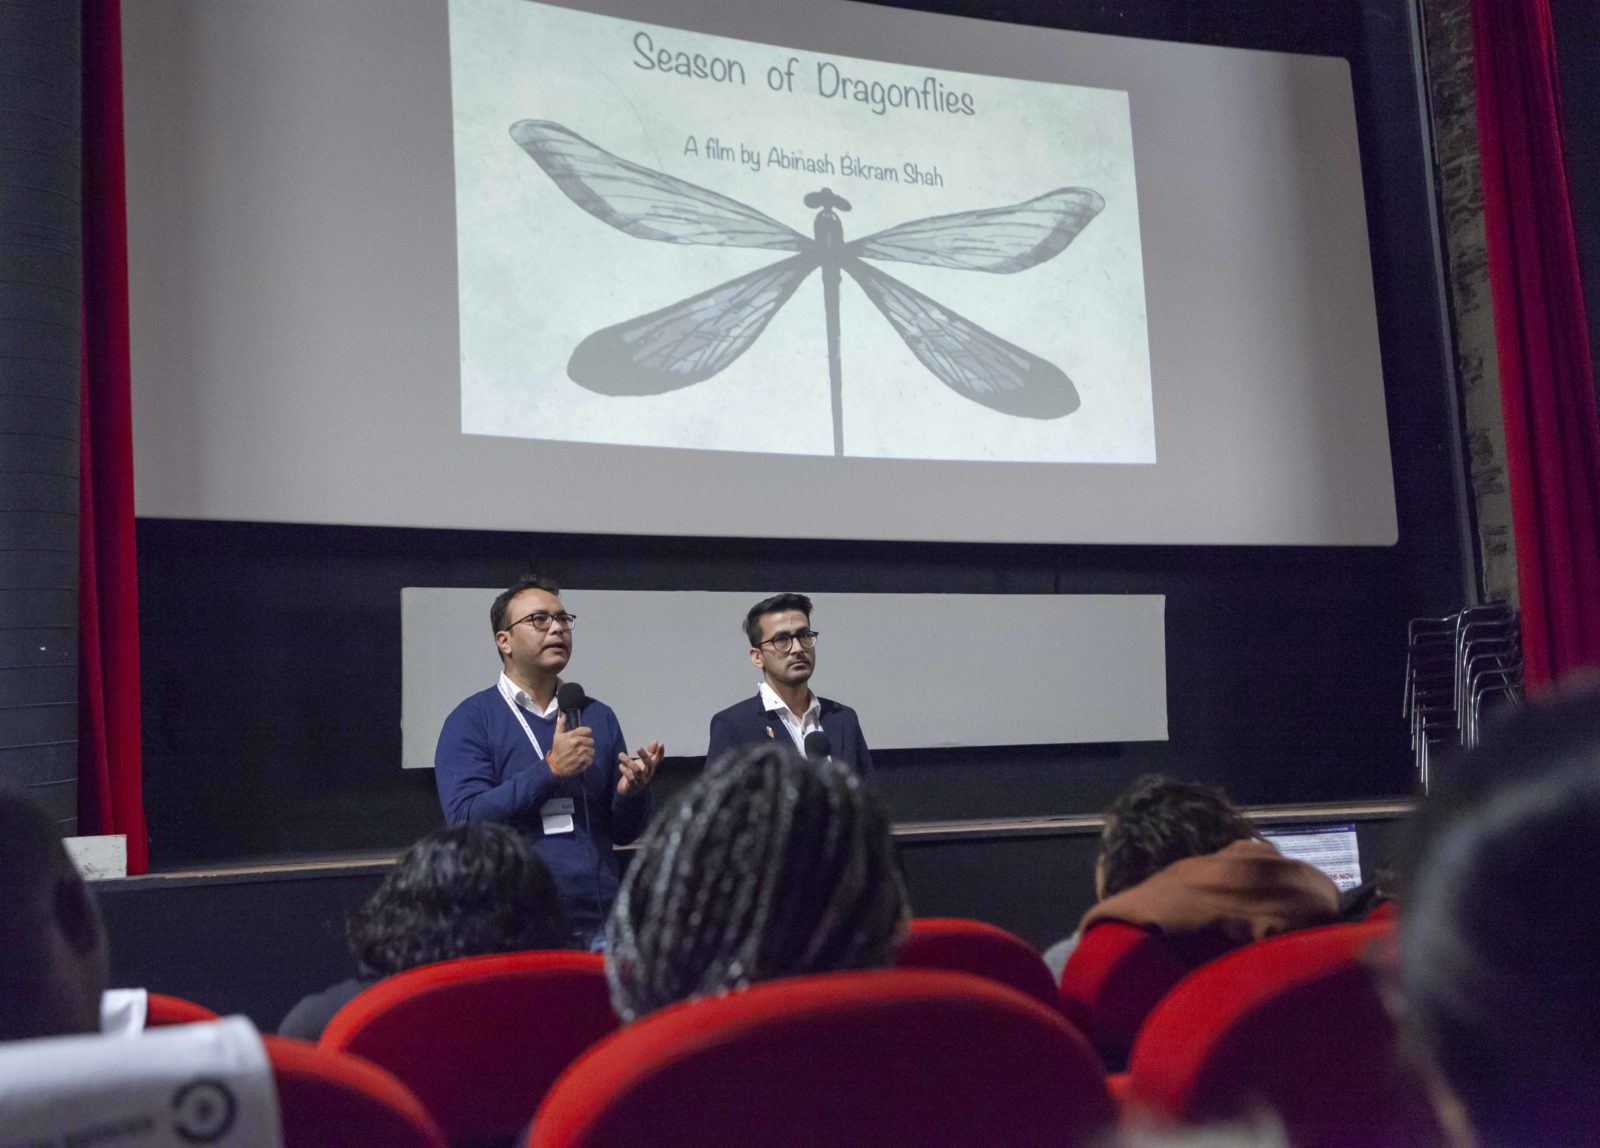 Pitch presentation at Le Cinématographe